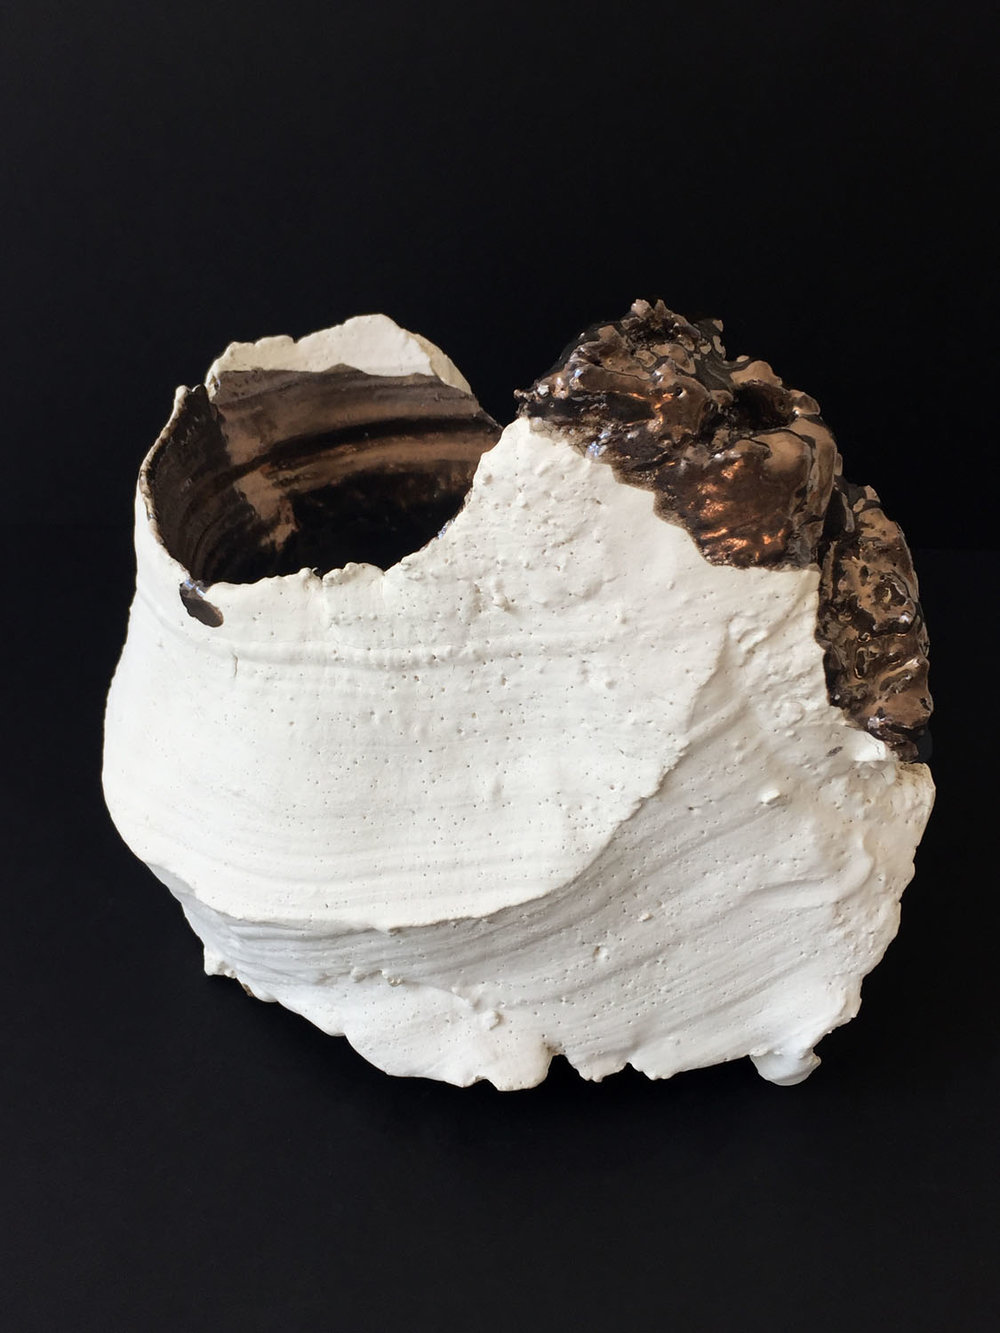 Gesture (C) , 2010, glazed ceramic, 6.5 x 9 x 7.25 inches